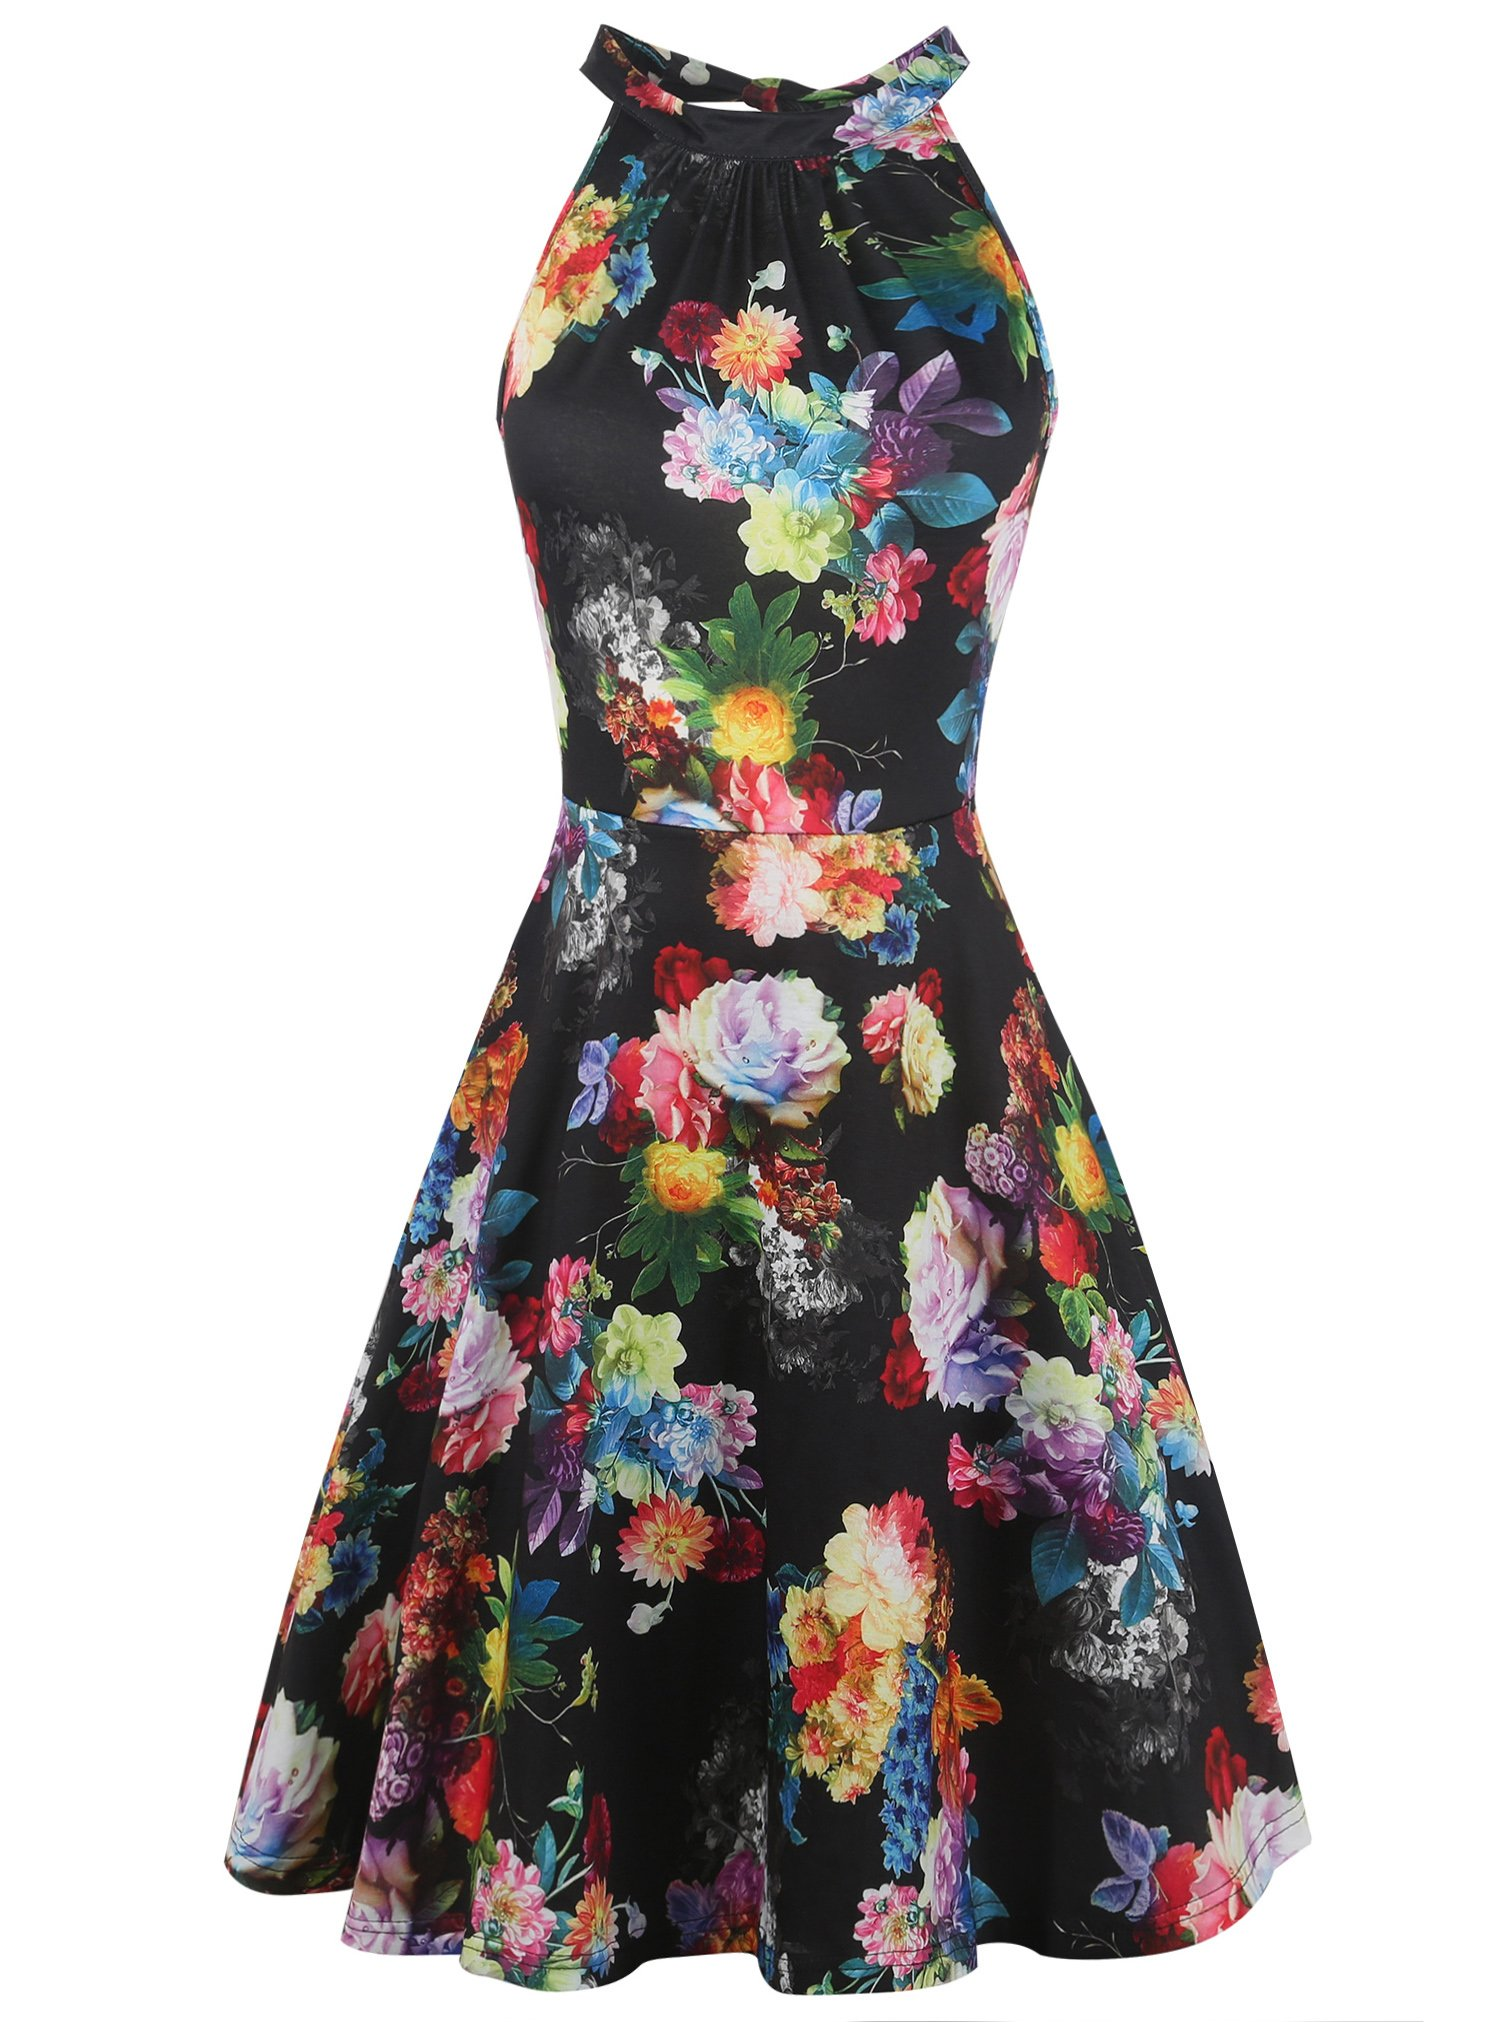 oxiuly Women's Chic Sleeveless Halter Neck Floral Patchwork Casual Cocktail Party Swing Summer Dress OX258 (L, Black Rose)